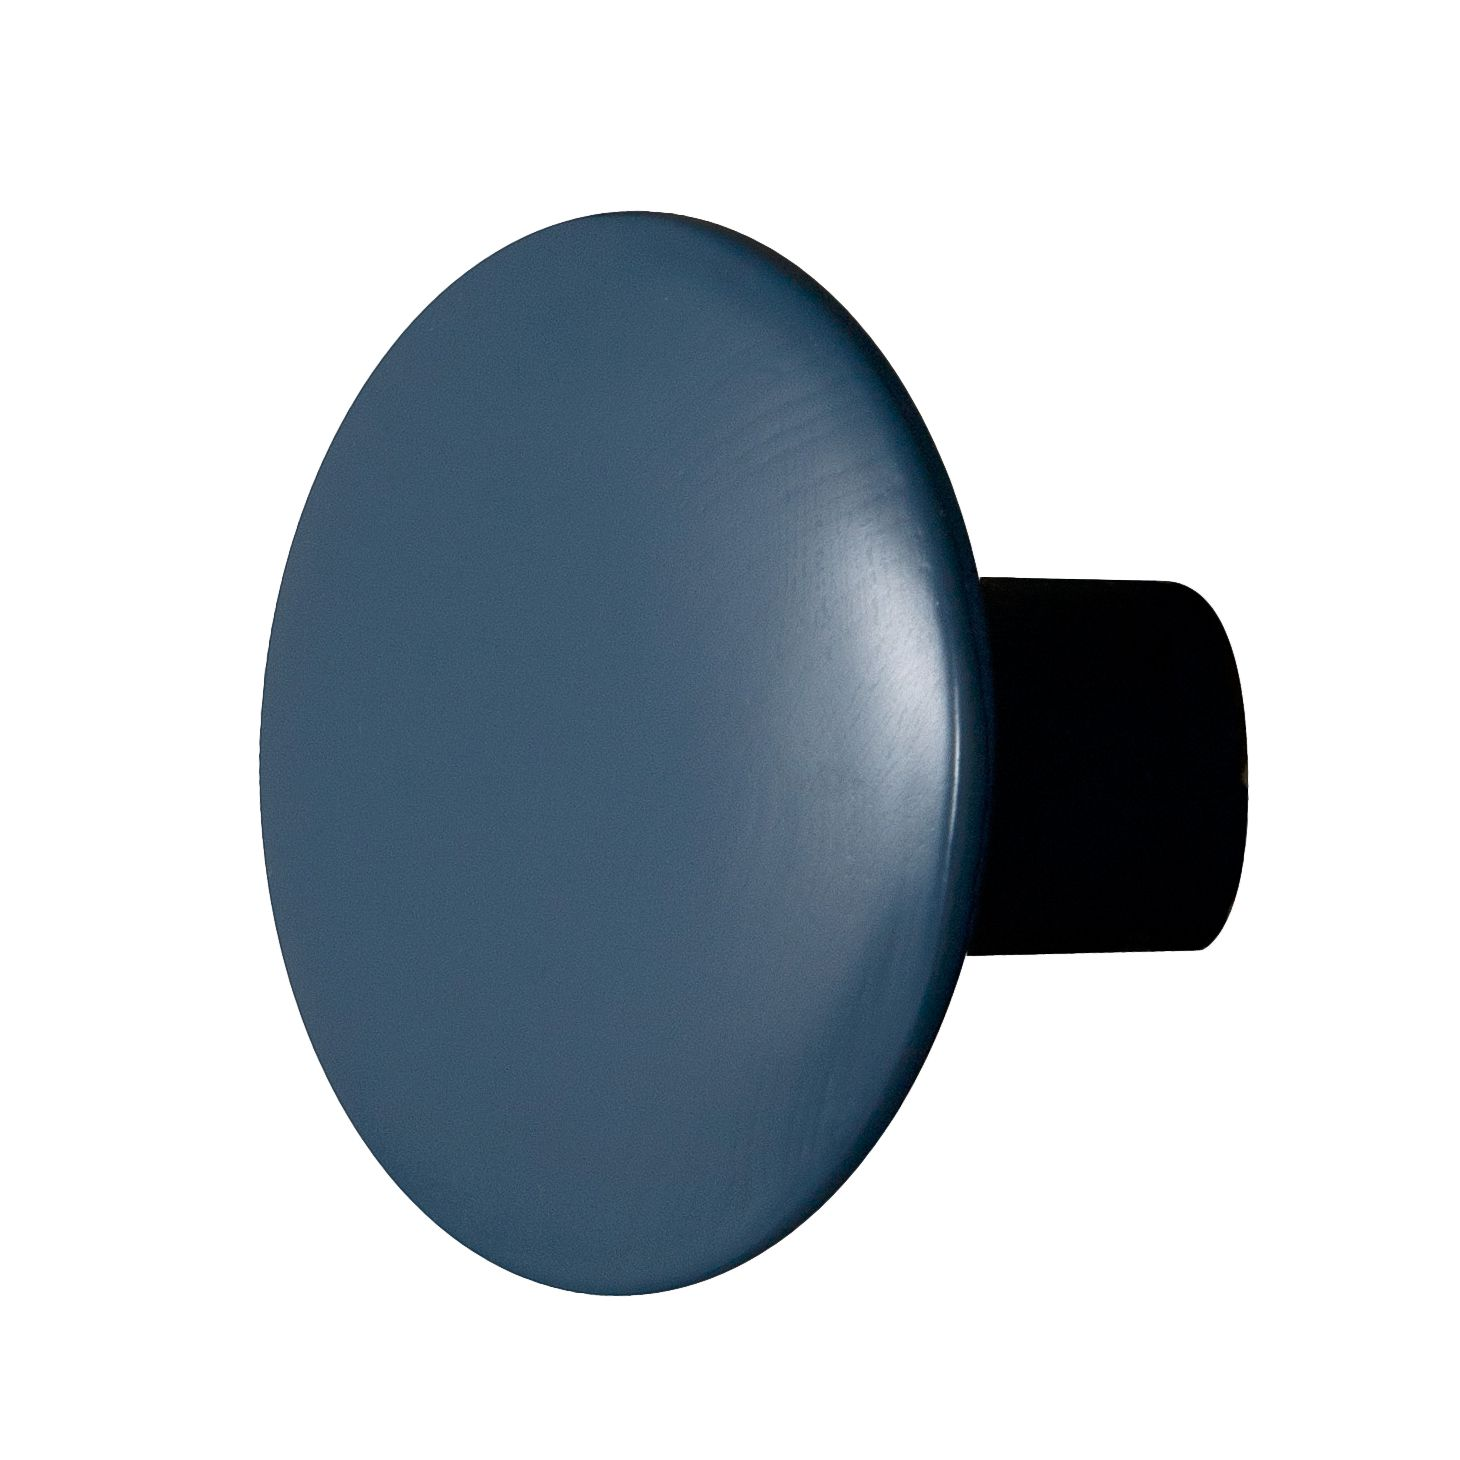 Wandhaken Button (2er-Set) - Birke massiv - 10 - Blau